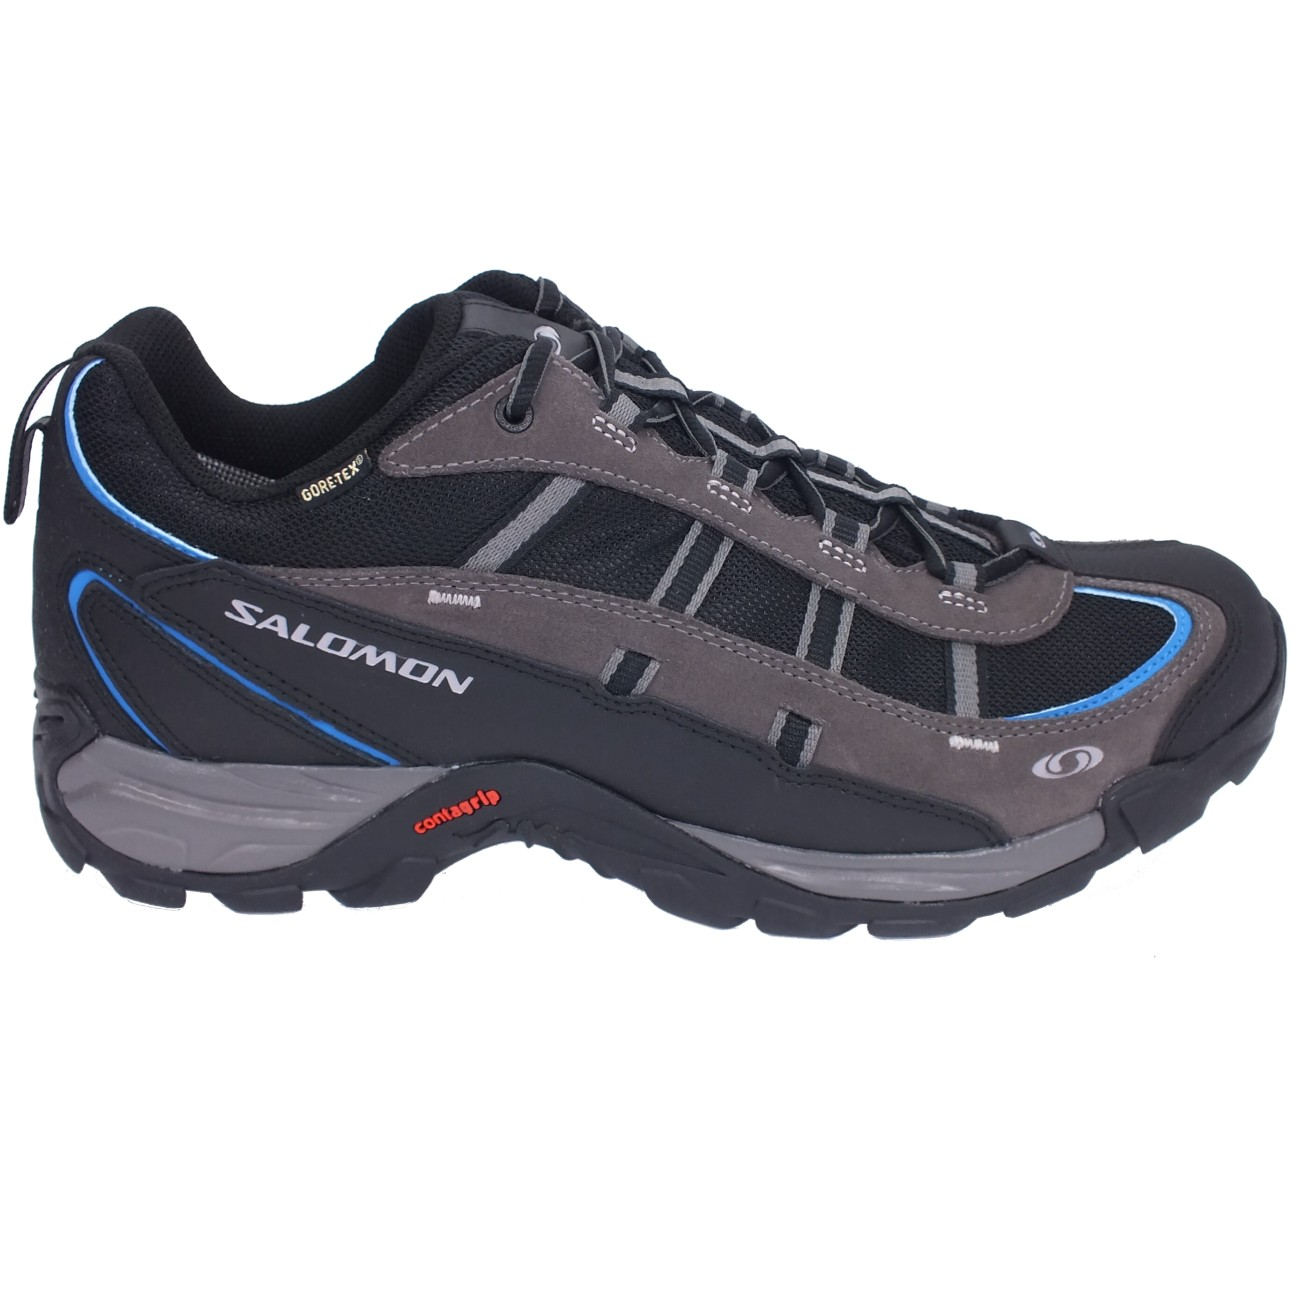 salomon booster gtx gore tex shoes hiking shoes trekking. Black Bedroom Furniture Sets. Home Design Ideas